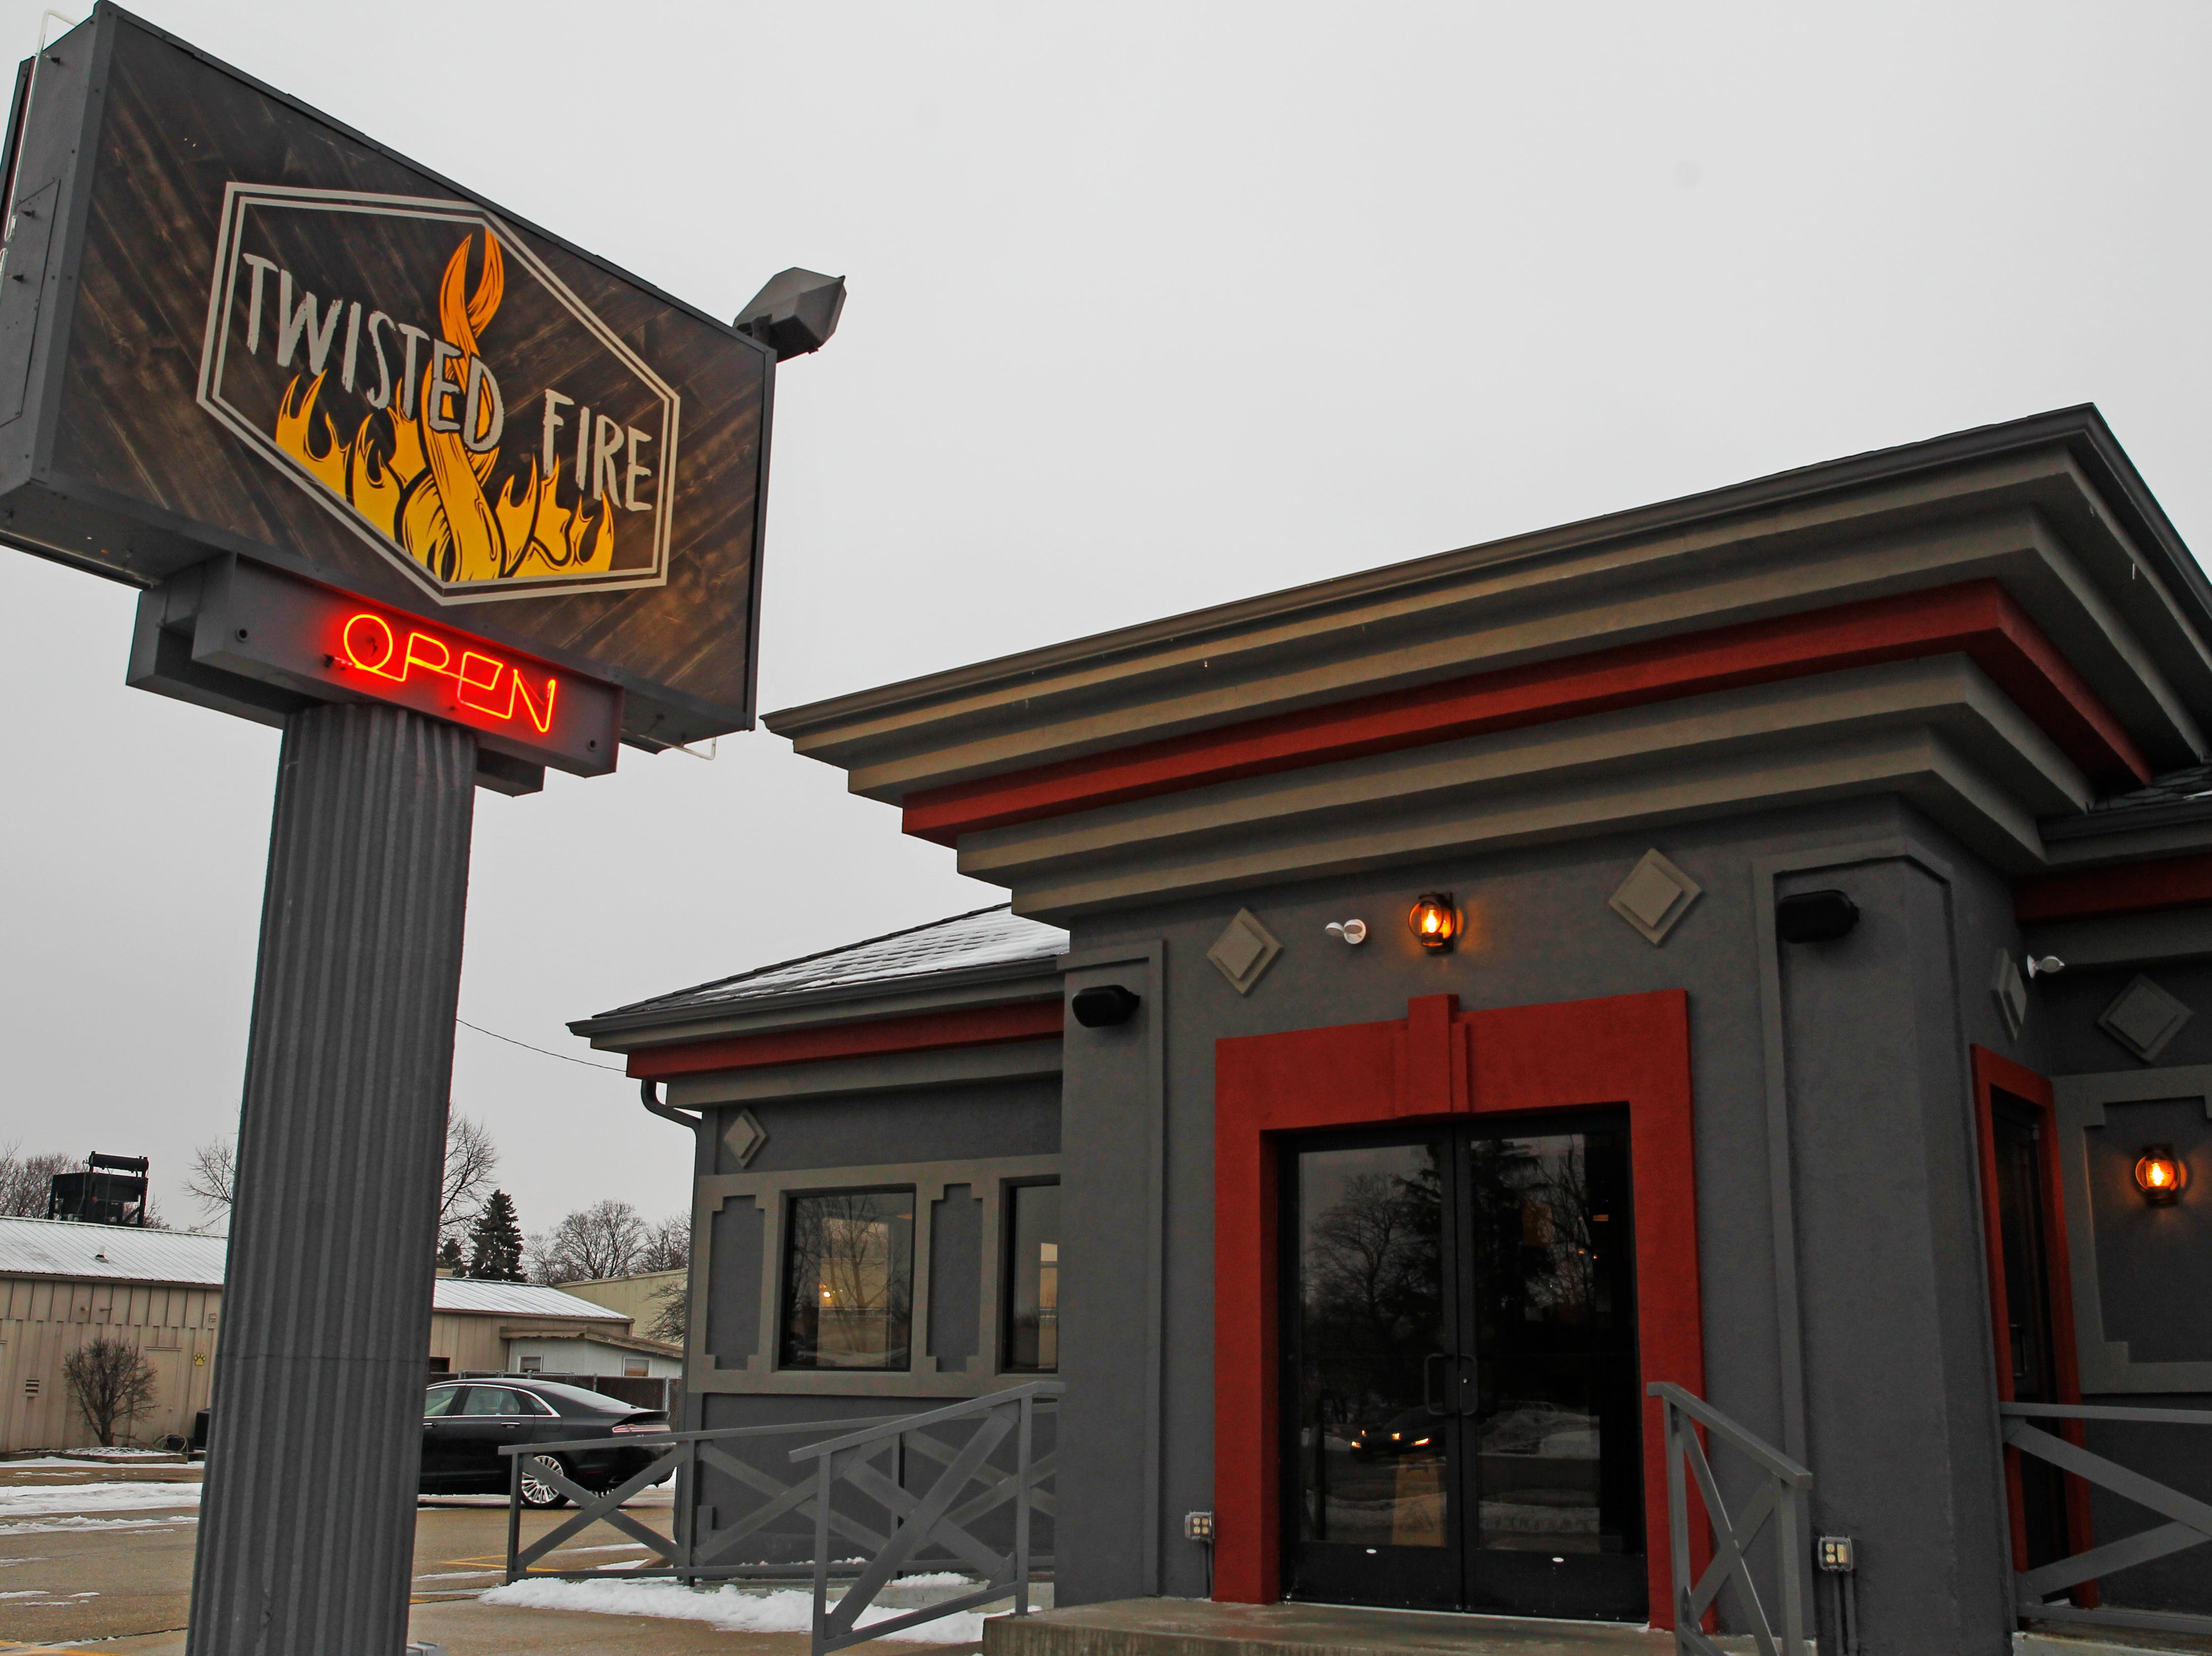 Twisted Fire restaurant at 515 E. Wisconsin Ave., Oconomowac, Wi.